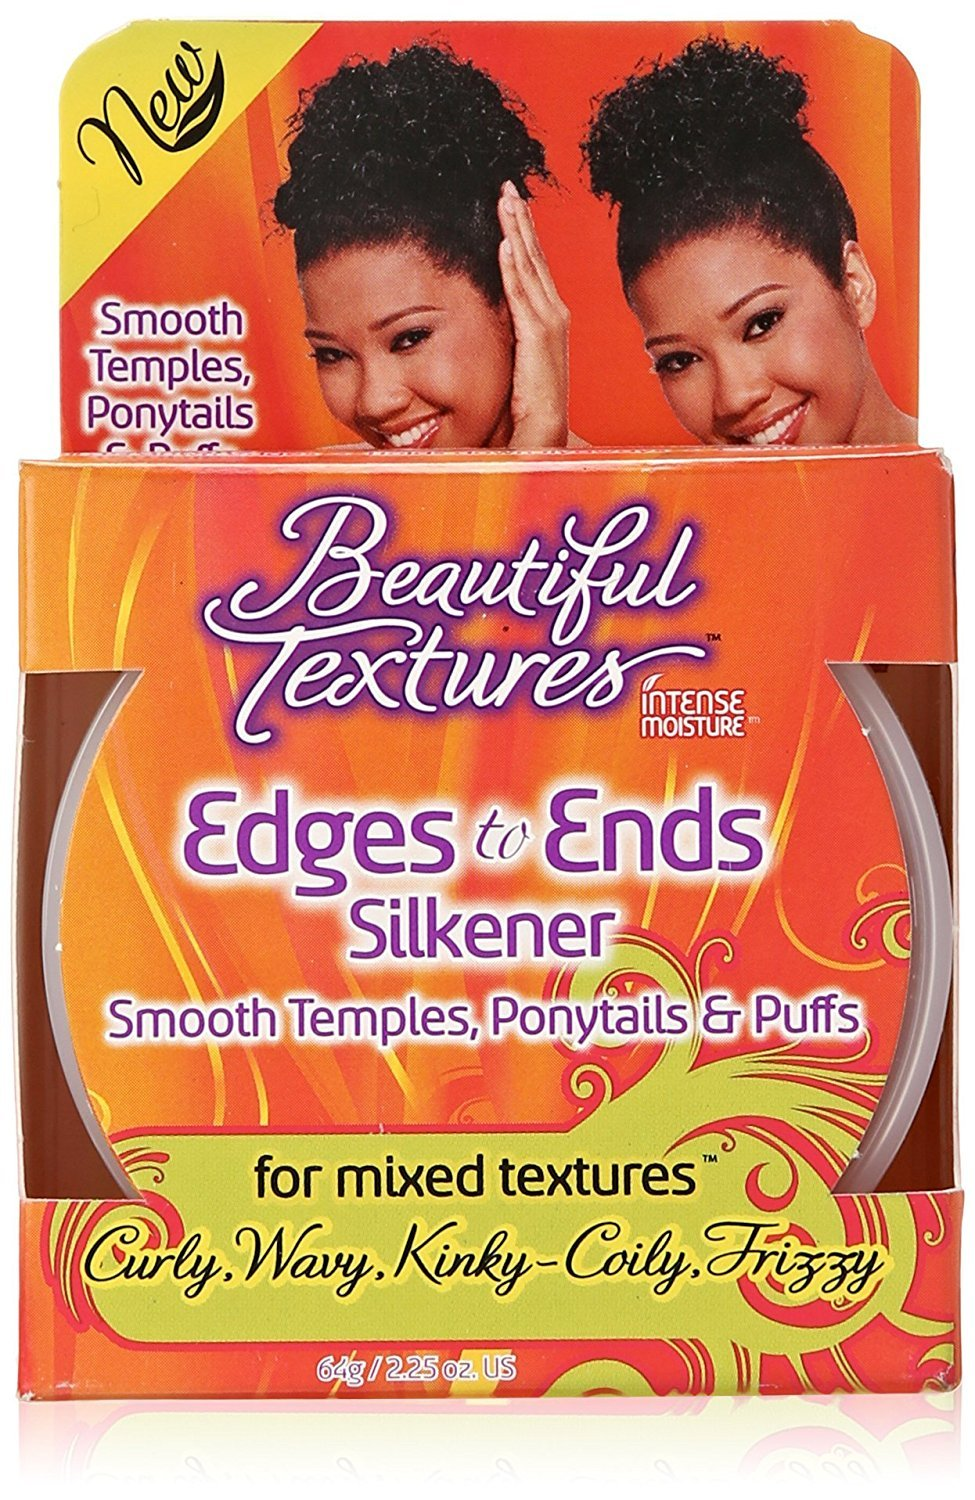 Beautiful Textures Edges To Ends Silkener, 2.25 oz. Atlas Ethnic 704039